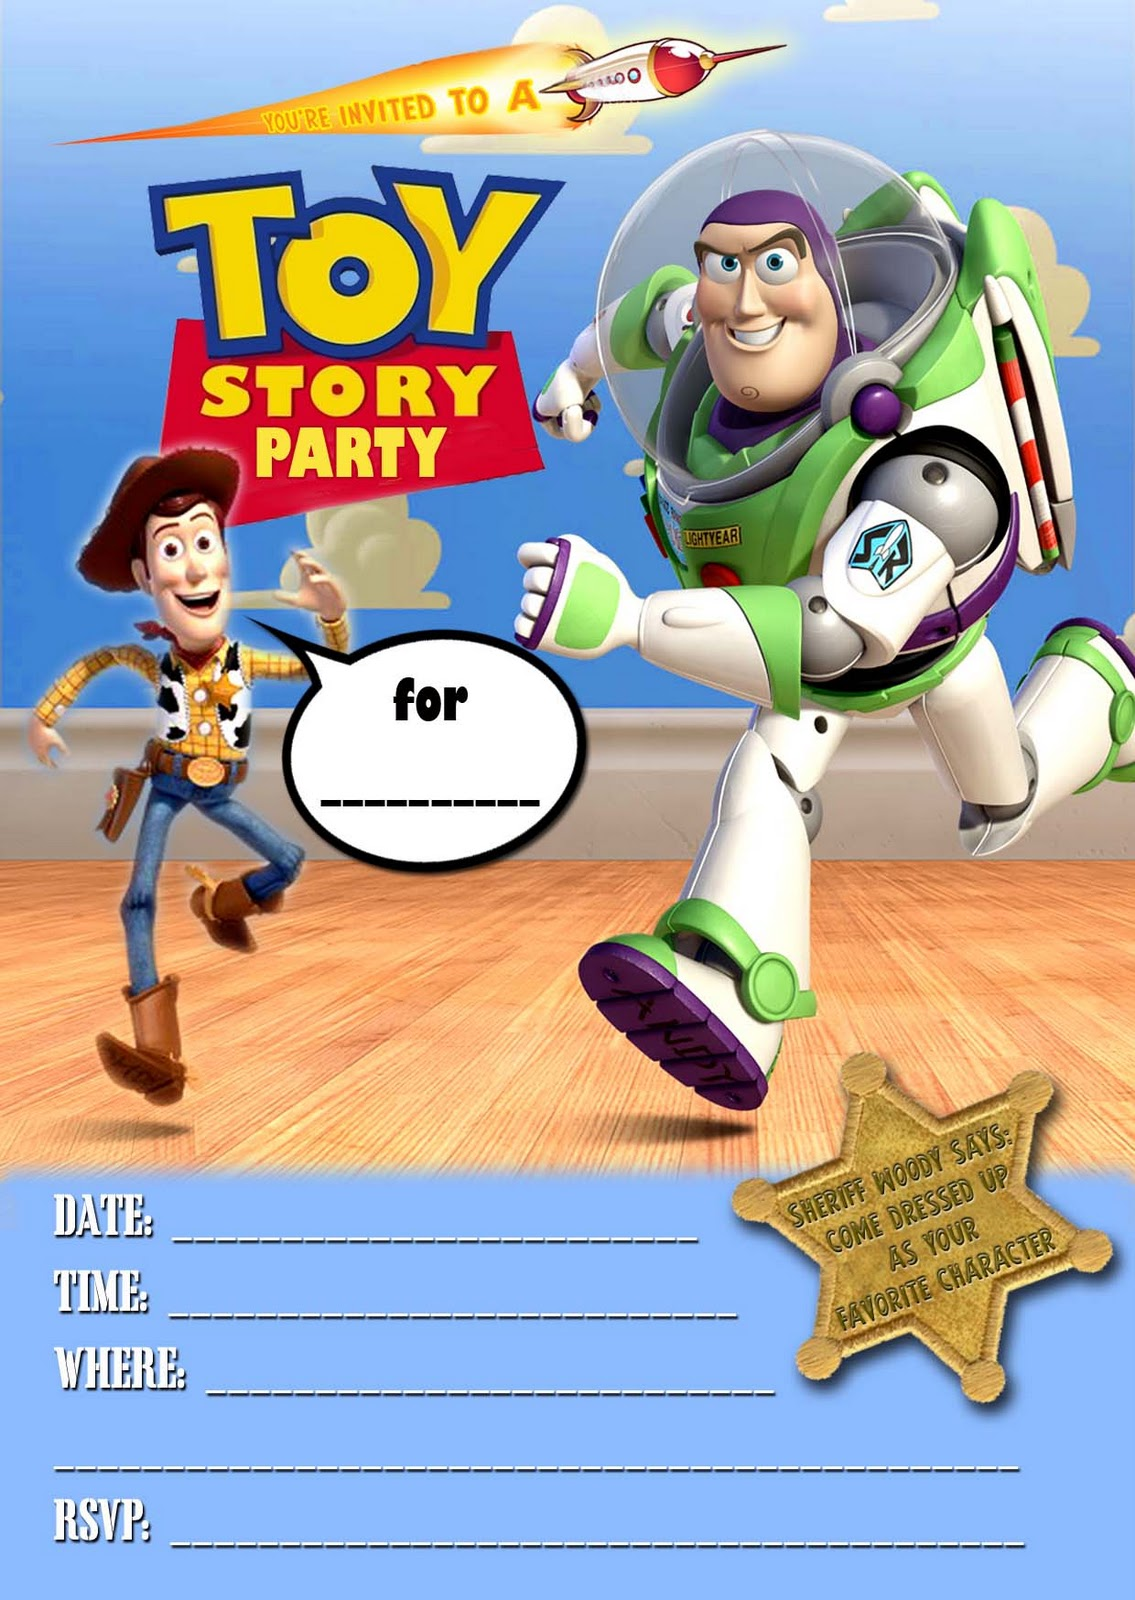 Free kids party invitations toy story party invitation for Toy story invites templates free